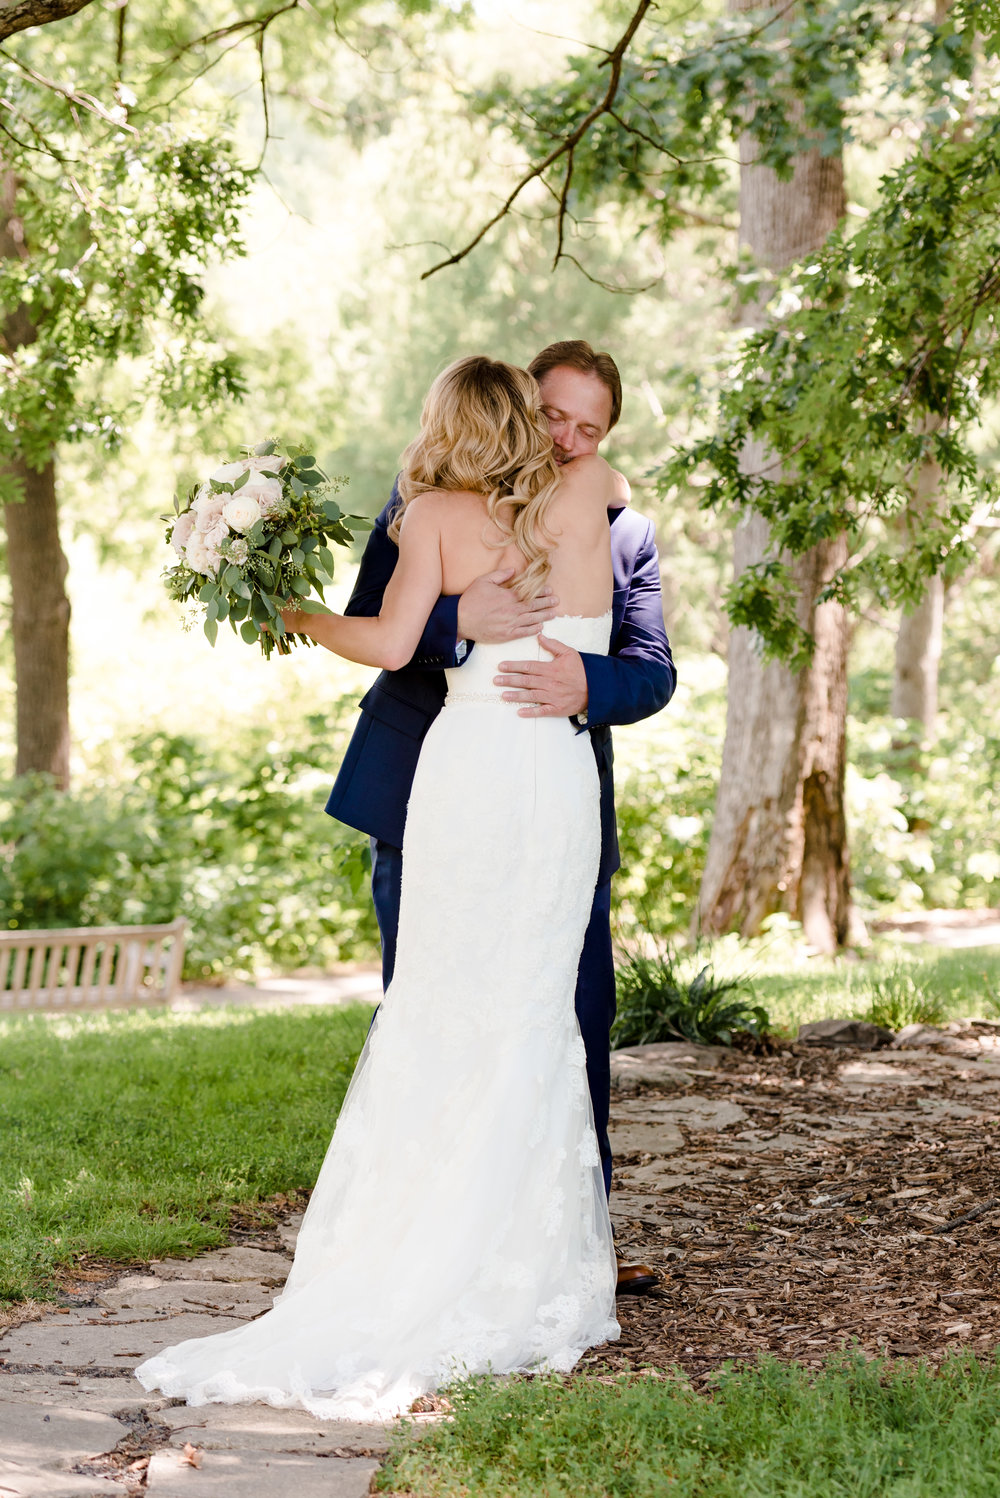 Emotional First Look with Dad - Laura Robinson Photography - Minnesota Wedding Photographer